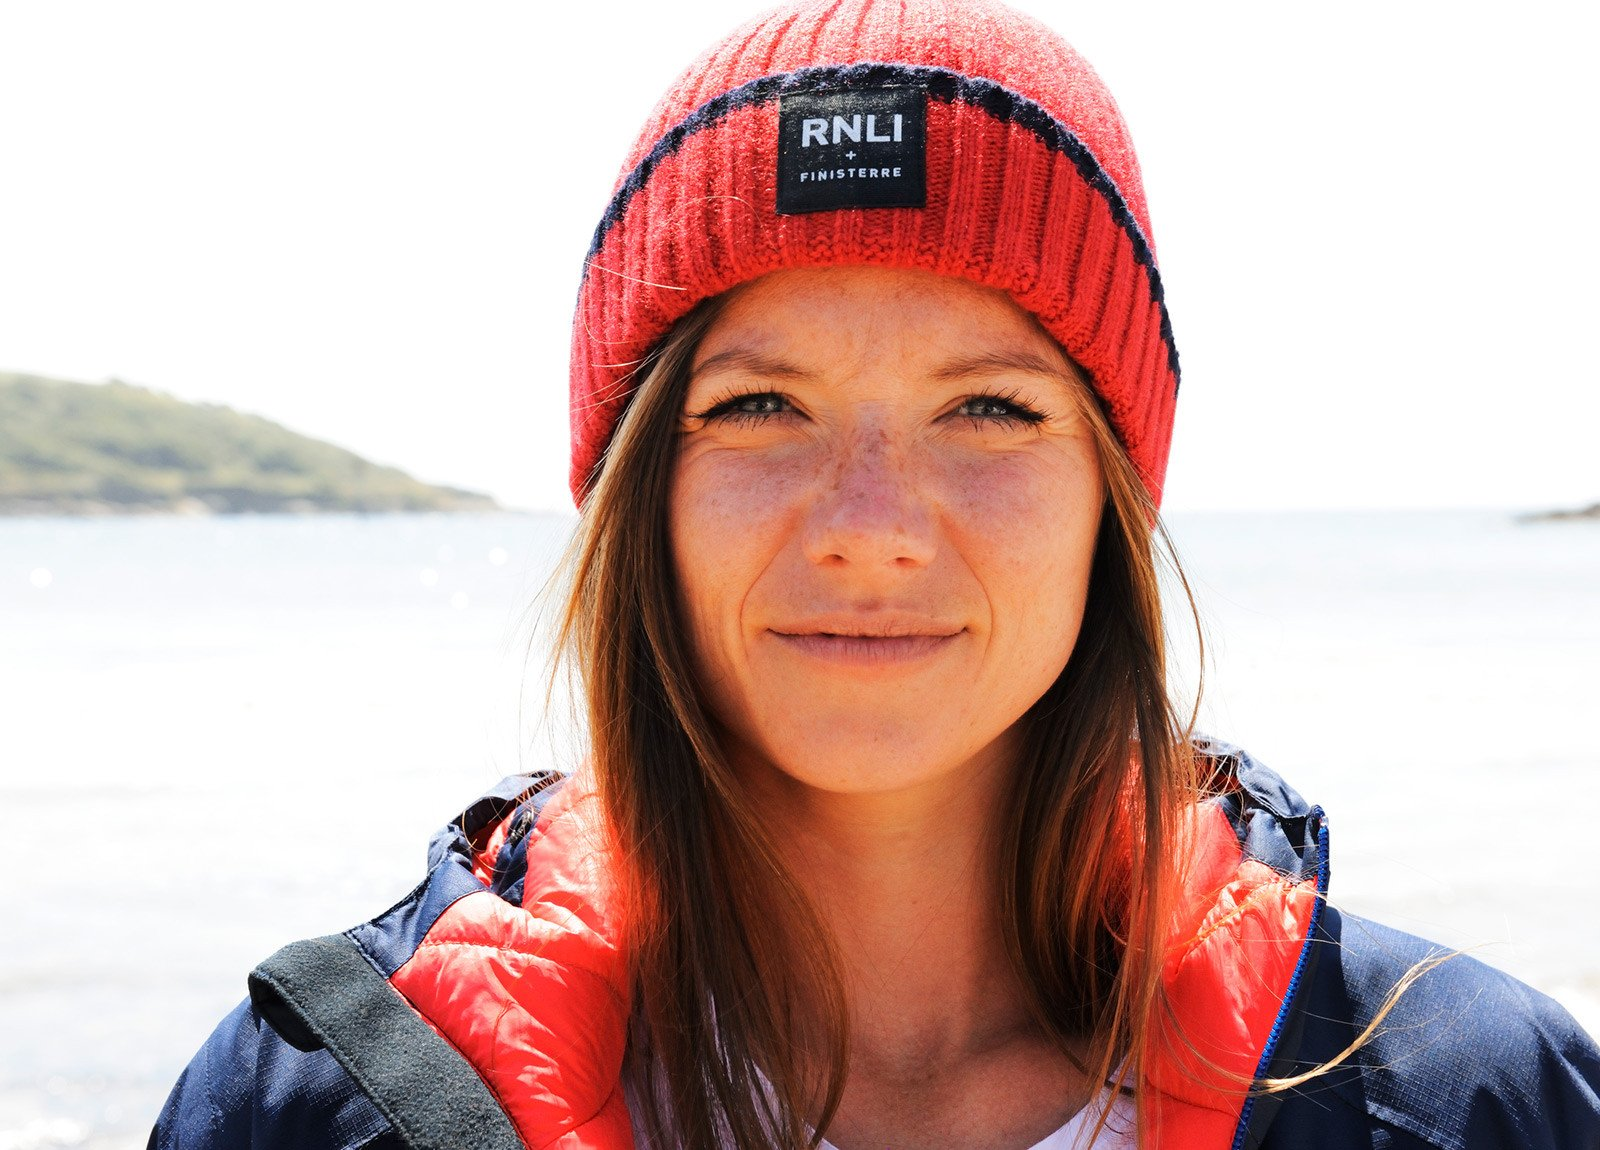 Finisterre Beanie.  Stocking Gifts for Snow Girls